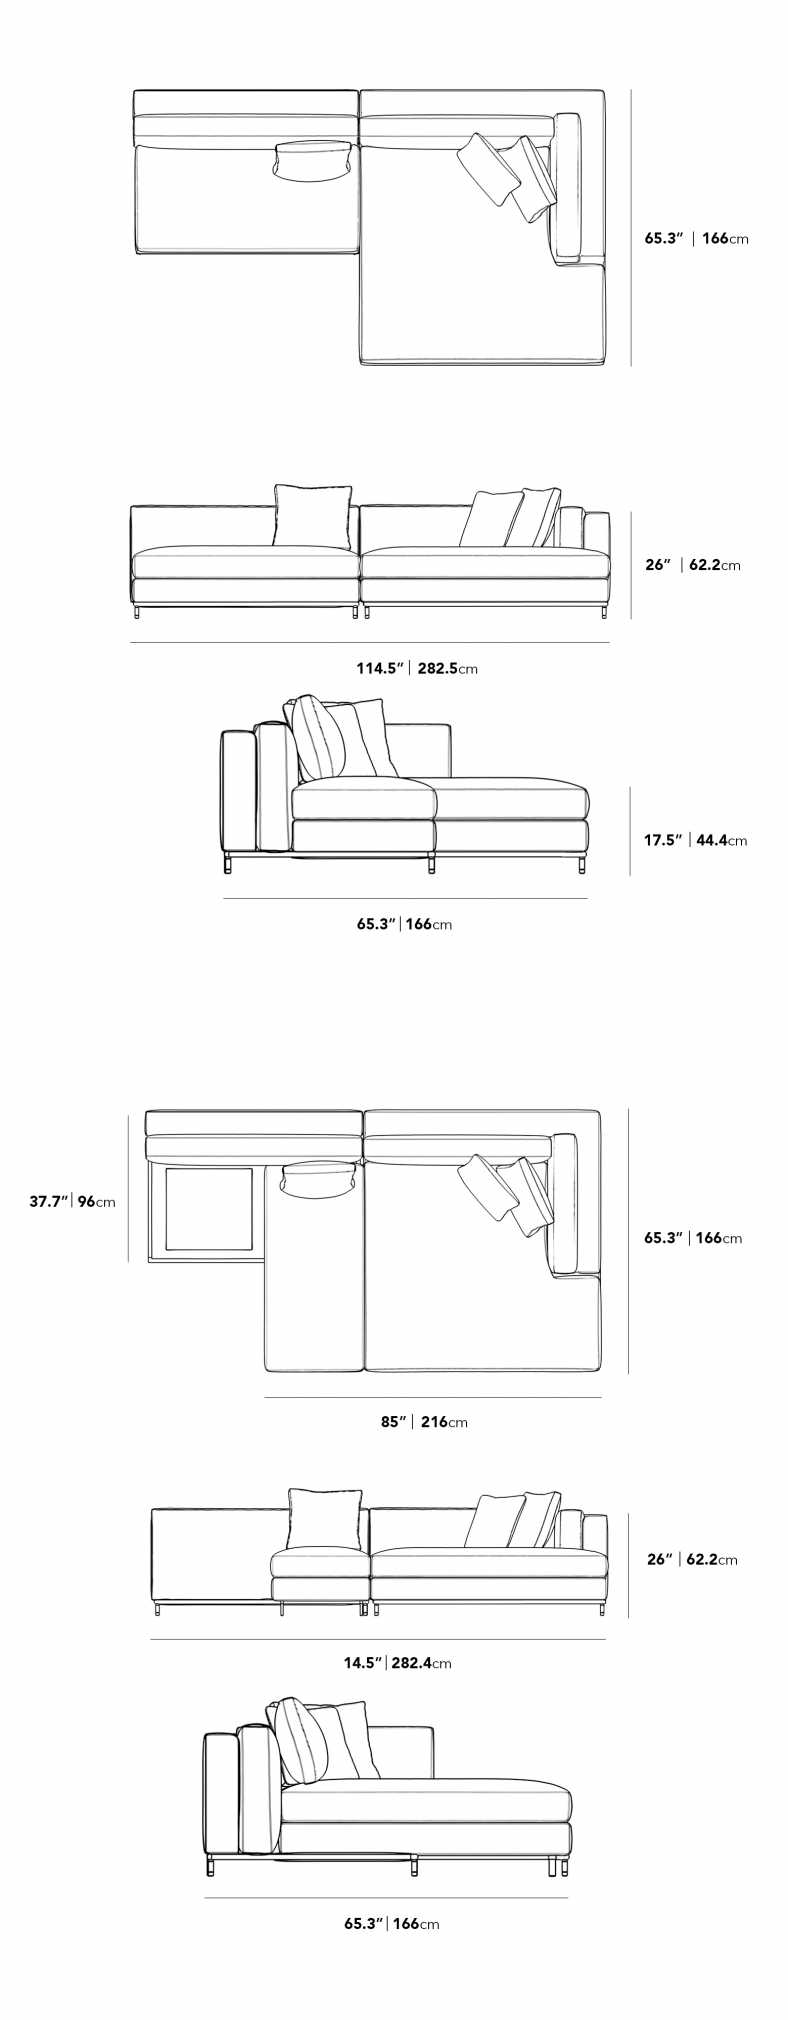 Dimensions for Nico Sleeper Sectional